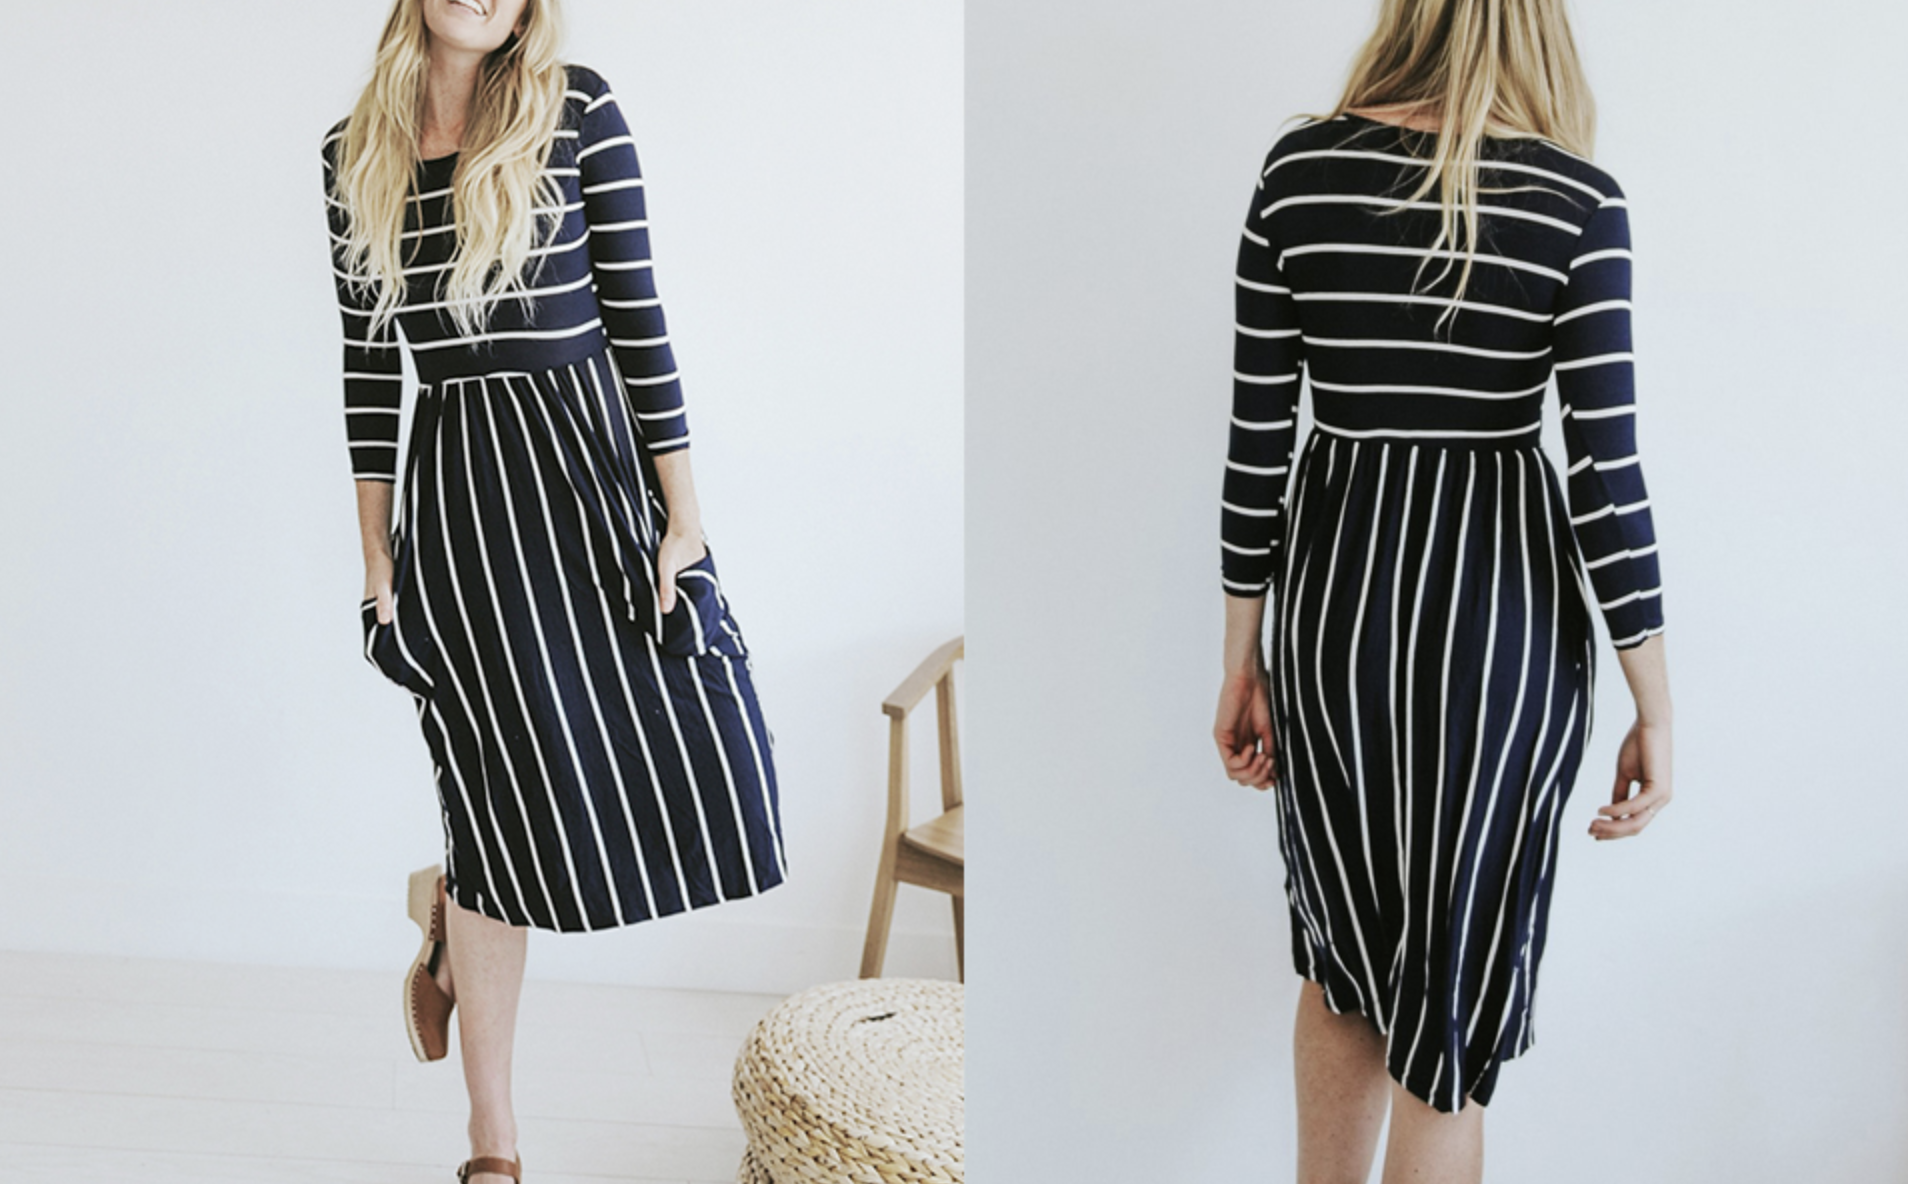 Model in a black dress with white stripes and 3/4 sleeves